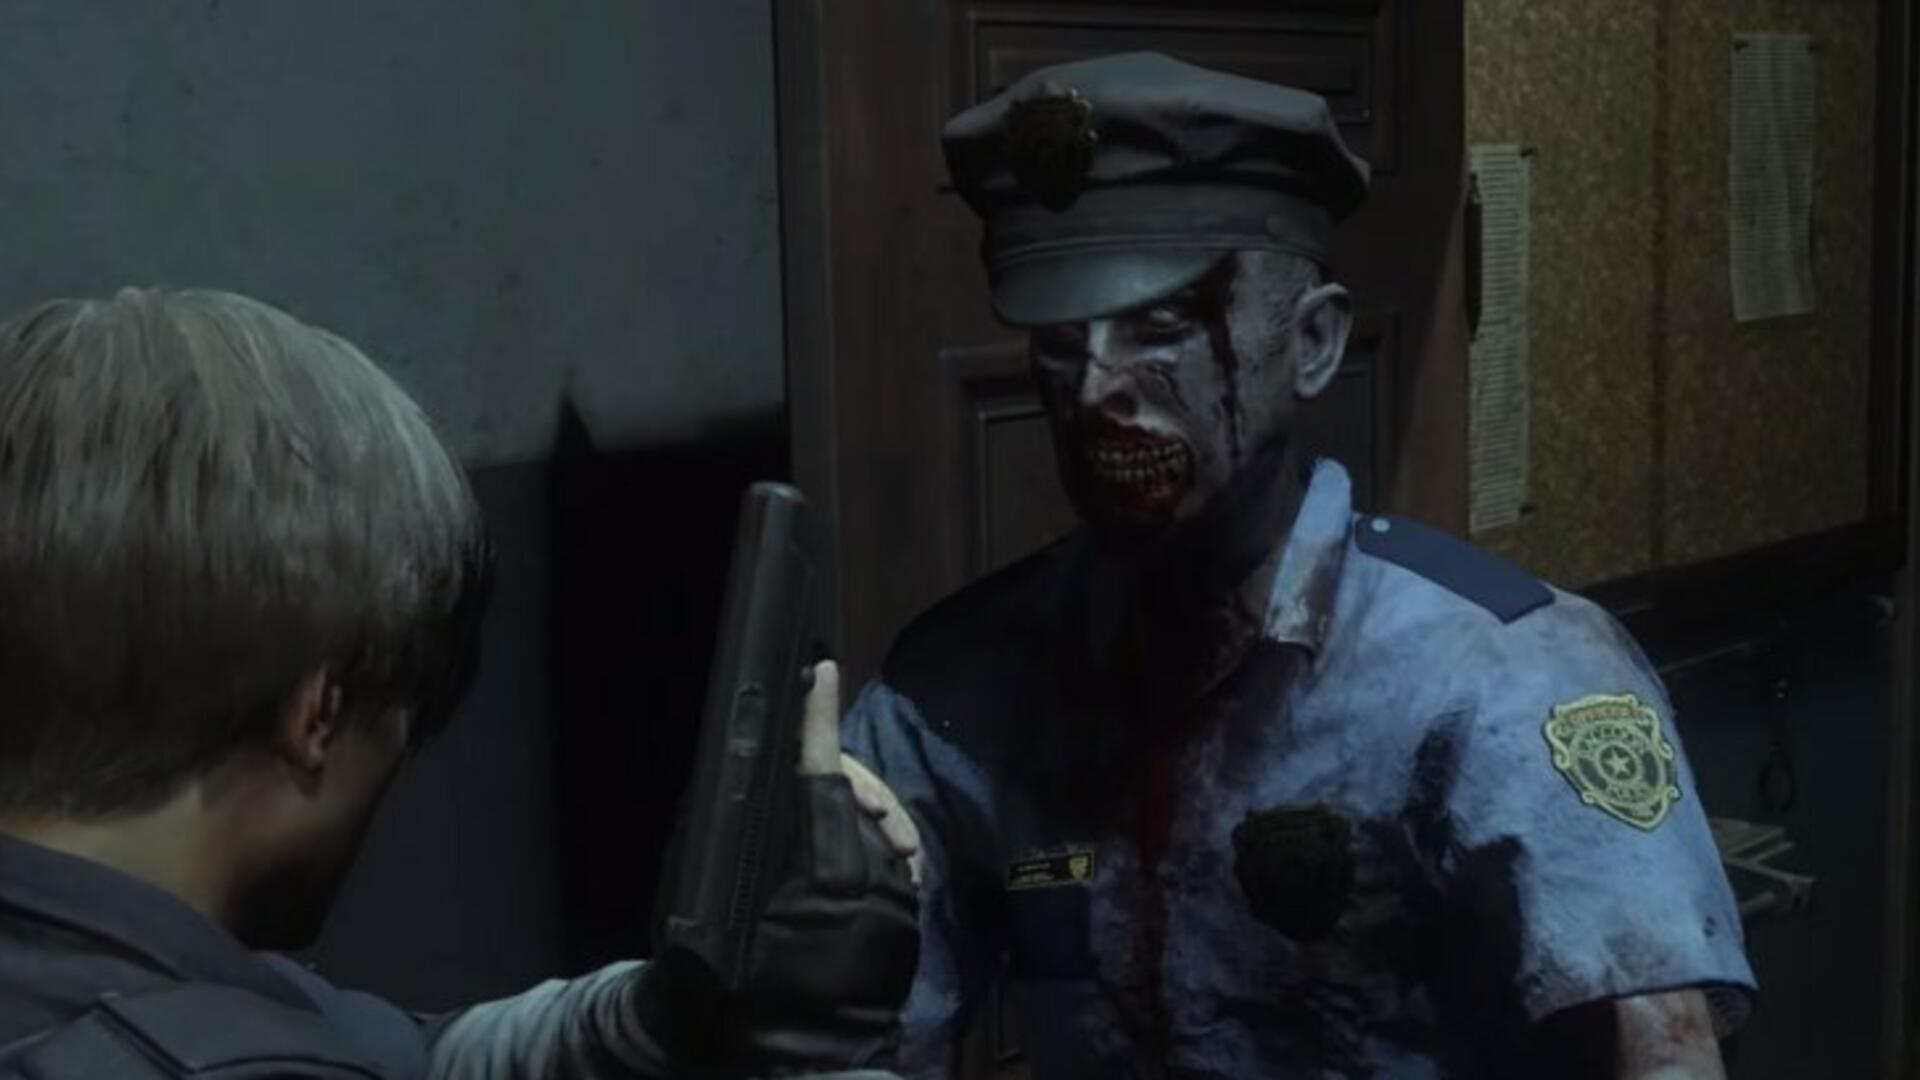 Resident Evil 2 Remake Looks Incredible Running at 4K 60 FPS on PC